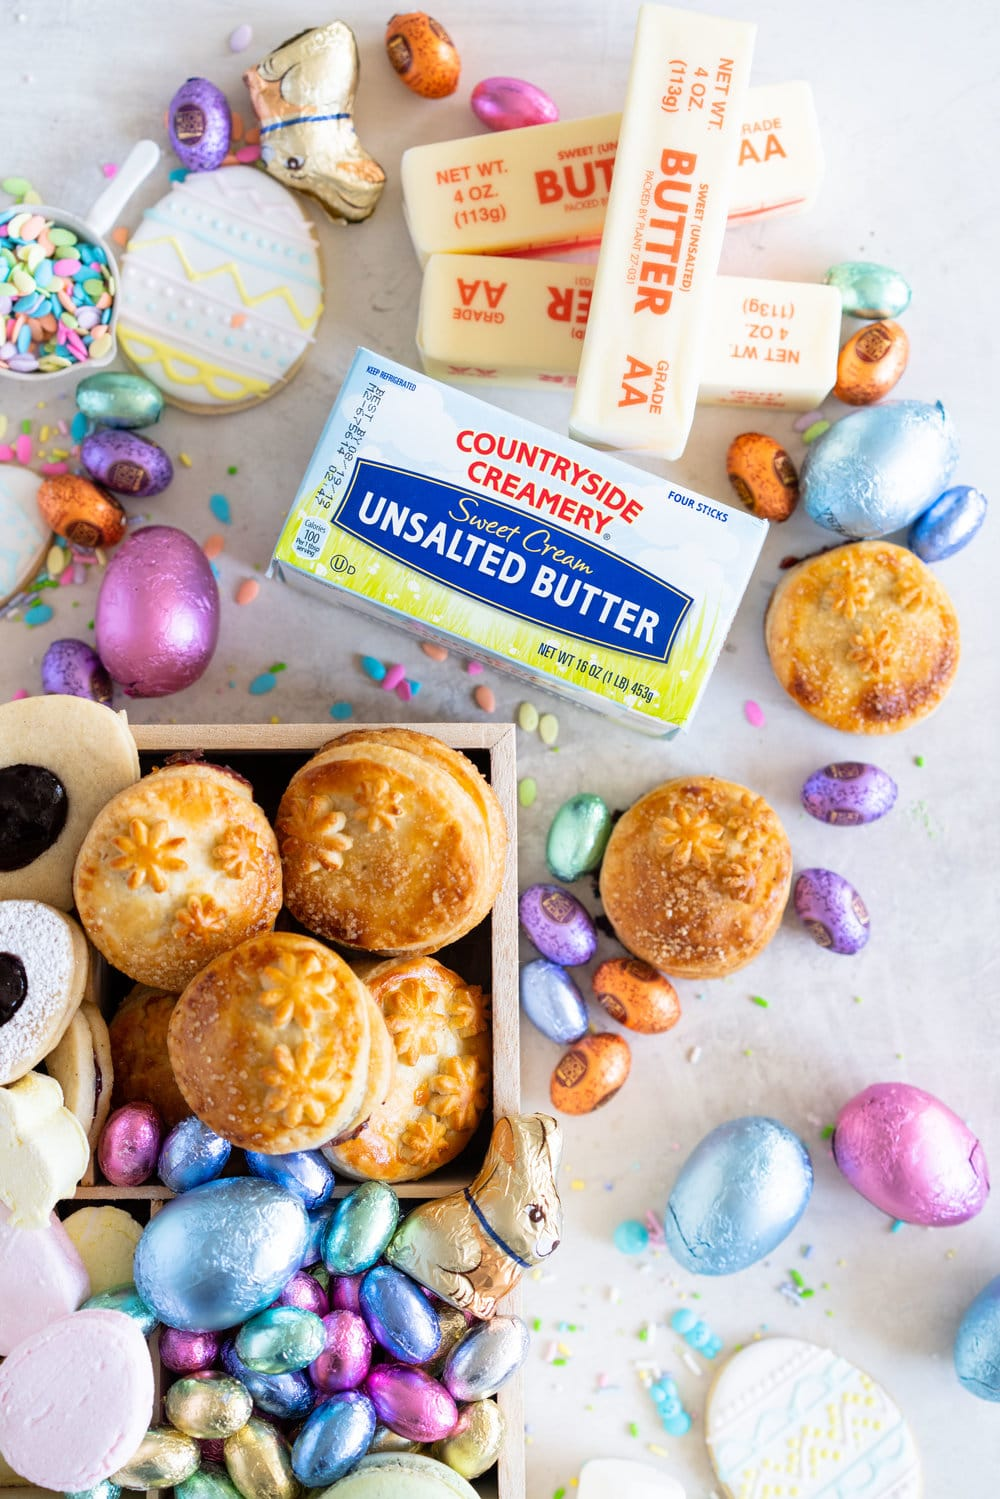 The Ultimate Easter treat box - iced cookies, cardamom linzers, hand pies, macarons, crispy rice treats and Easter mallows make the most amazing treat box, and are complimented perfectly by super cute foil wrapped chocolate eggs. This box would make the most perfect Easter gift, or the components are perfect alone for Easter treats. #easterbox #cookiebox #easterbaking